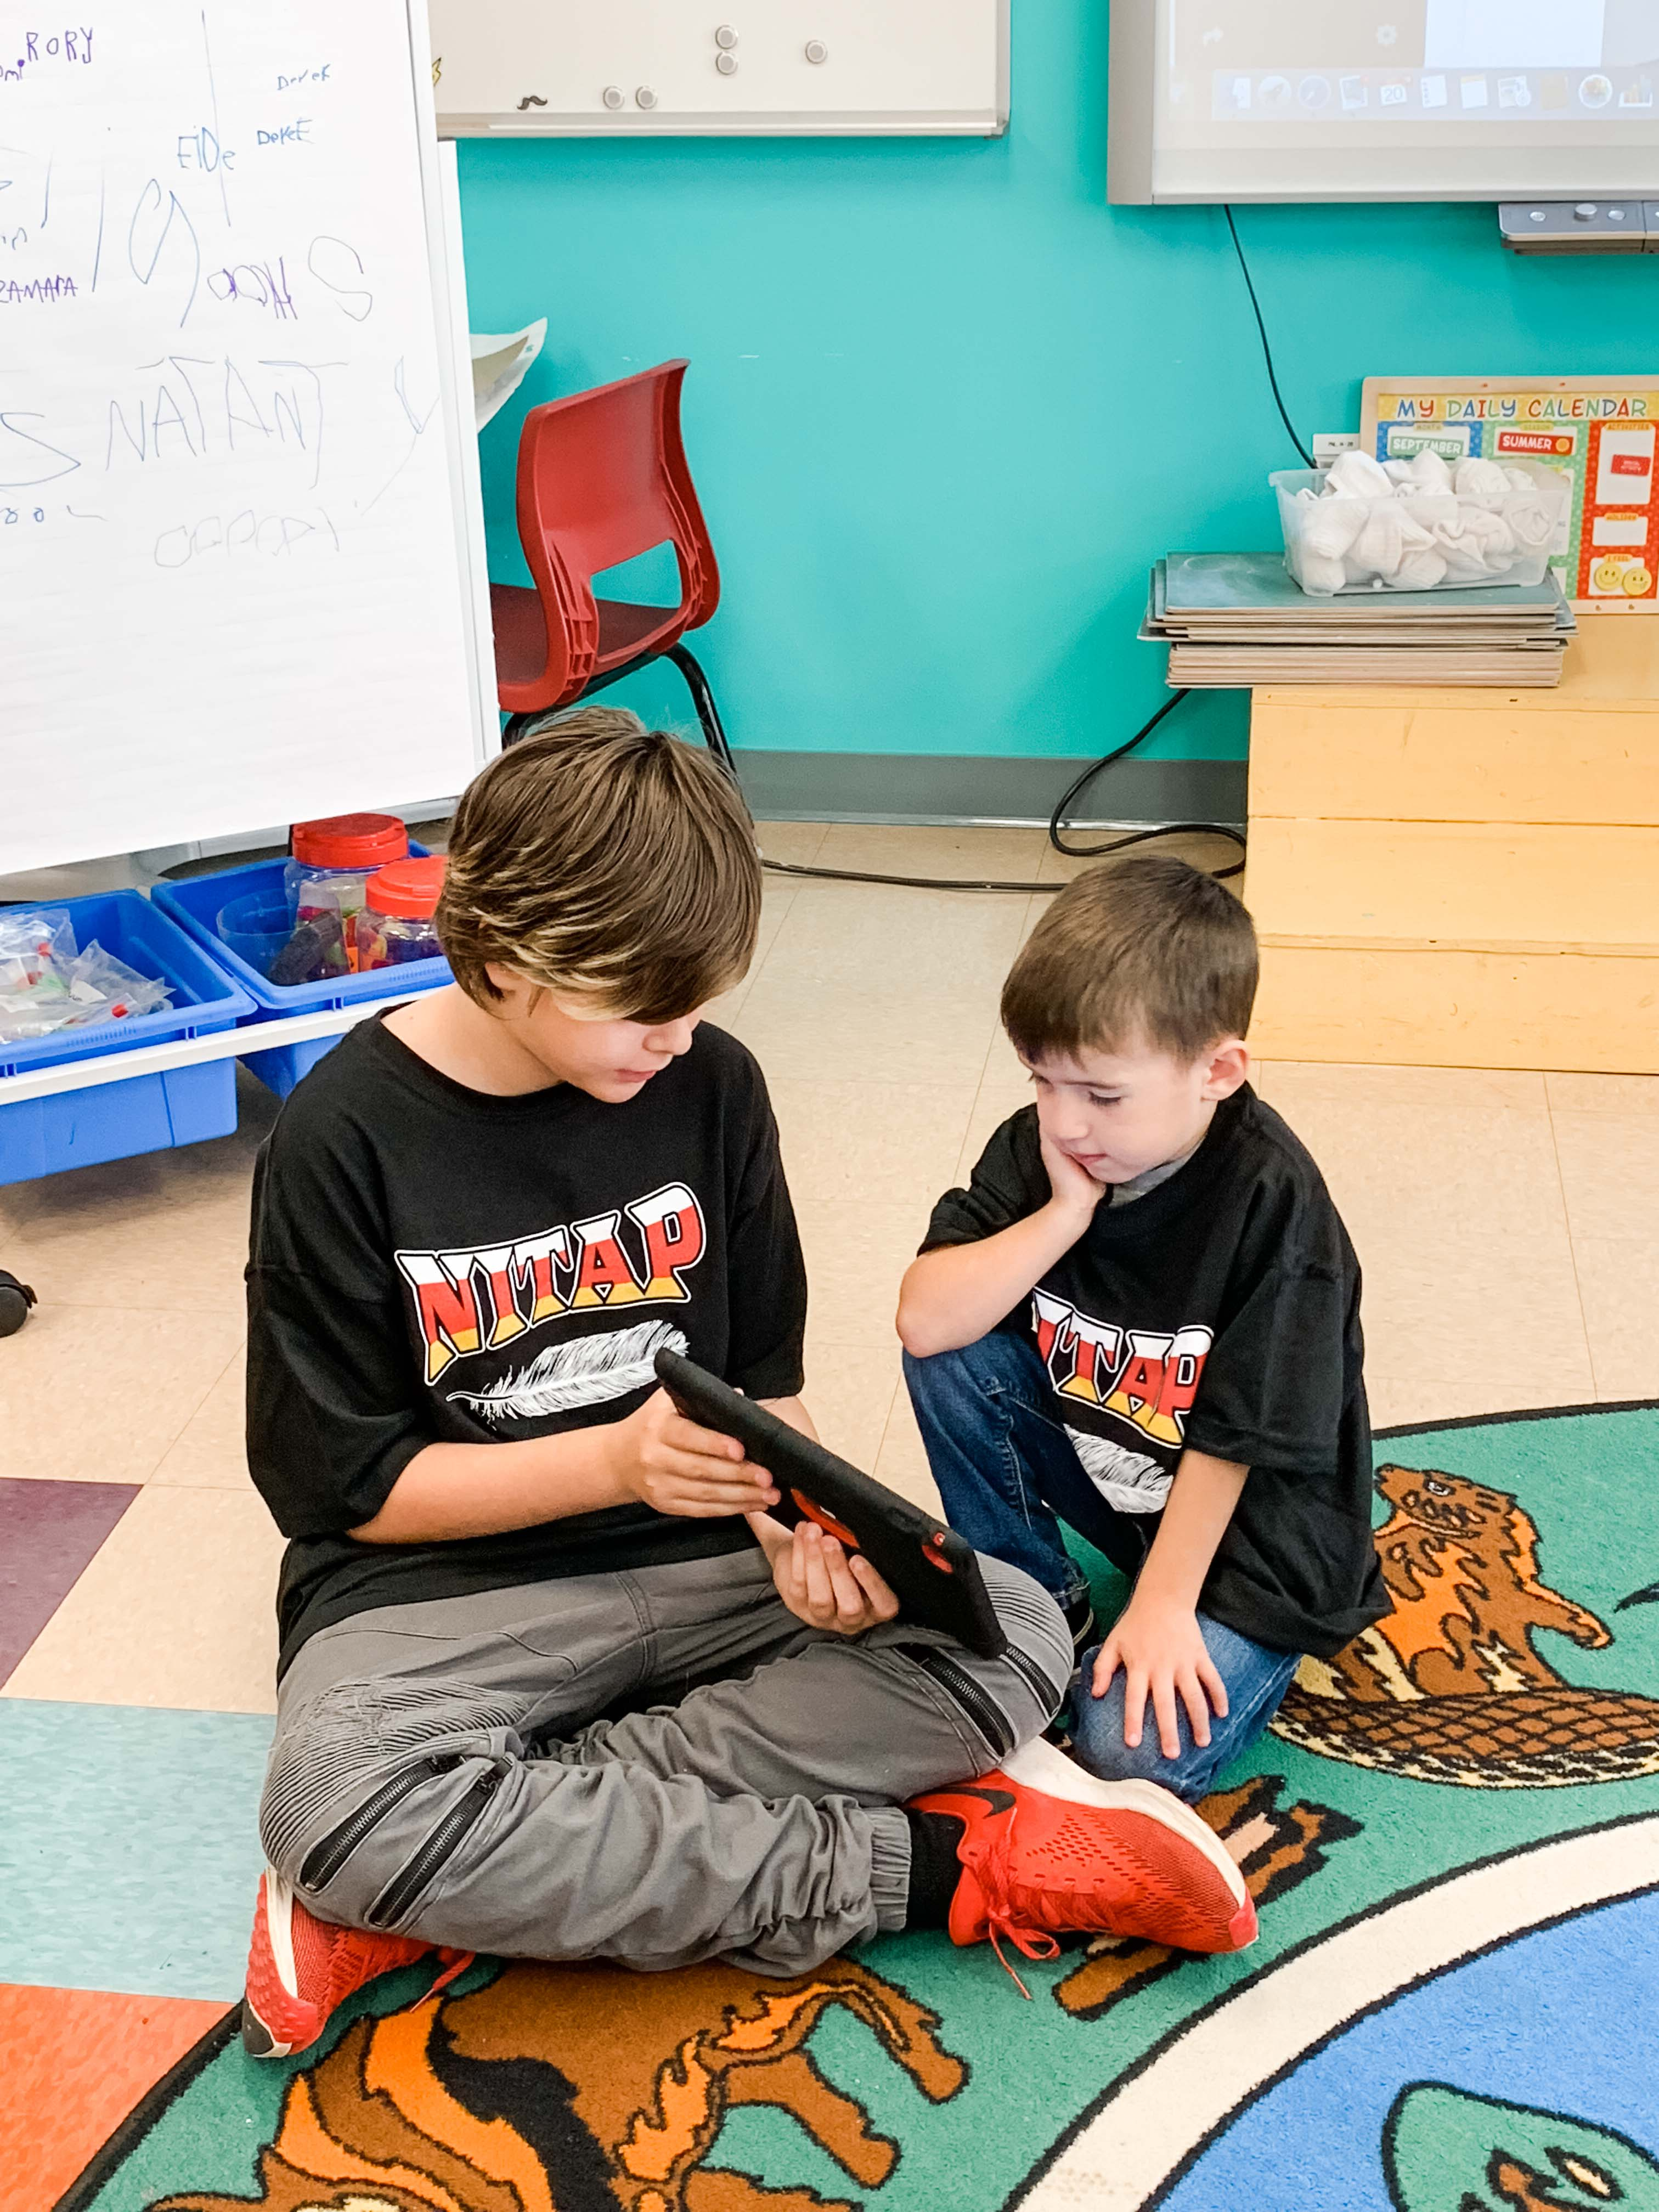 Two Mi'kmaq boys reading from tablet